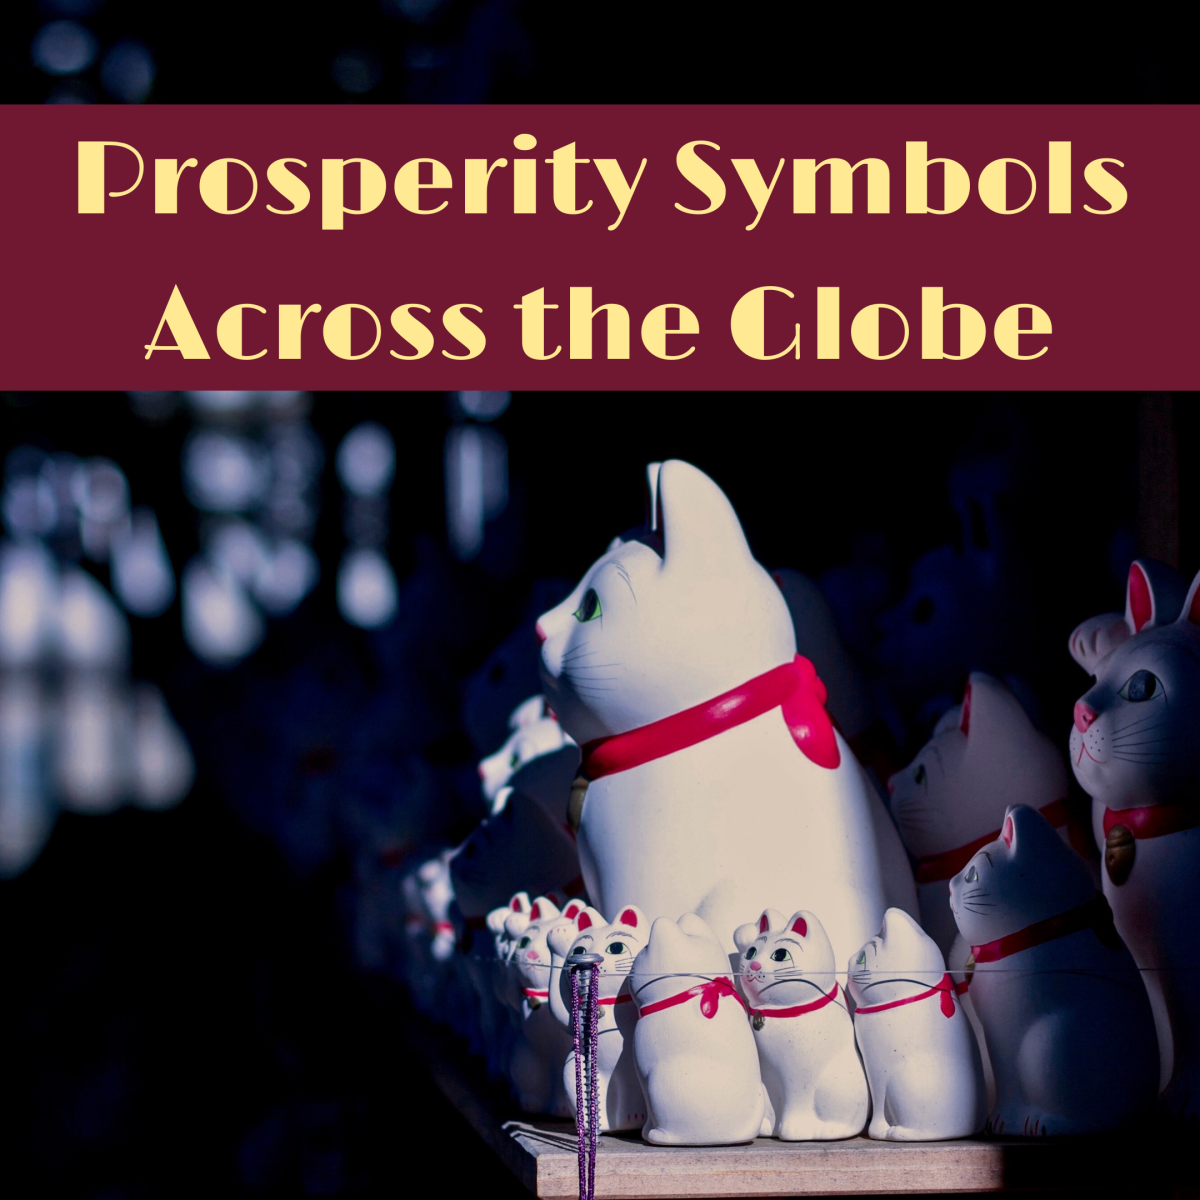 Symbols of Wealth and Prosperity